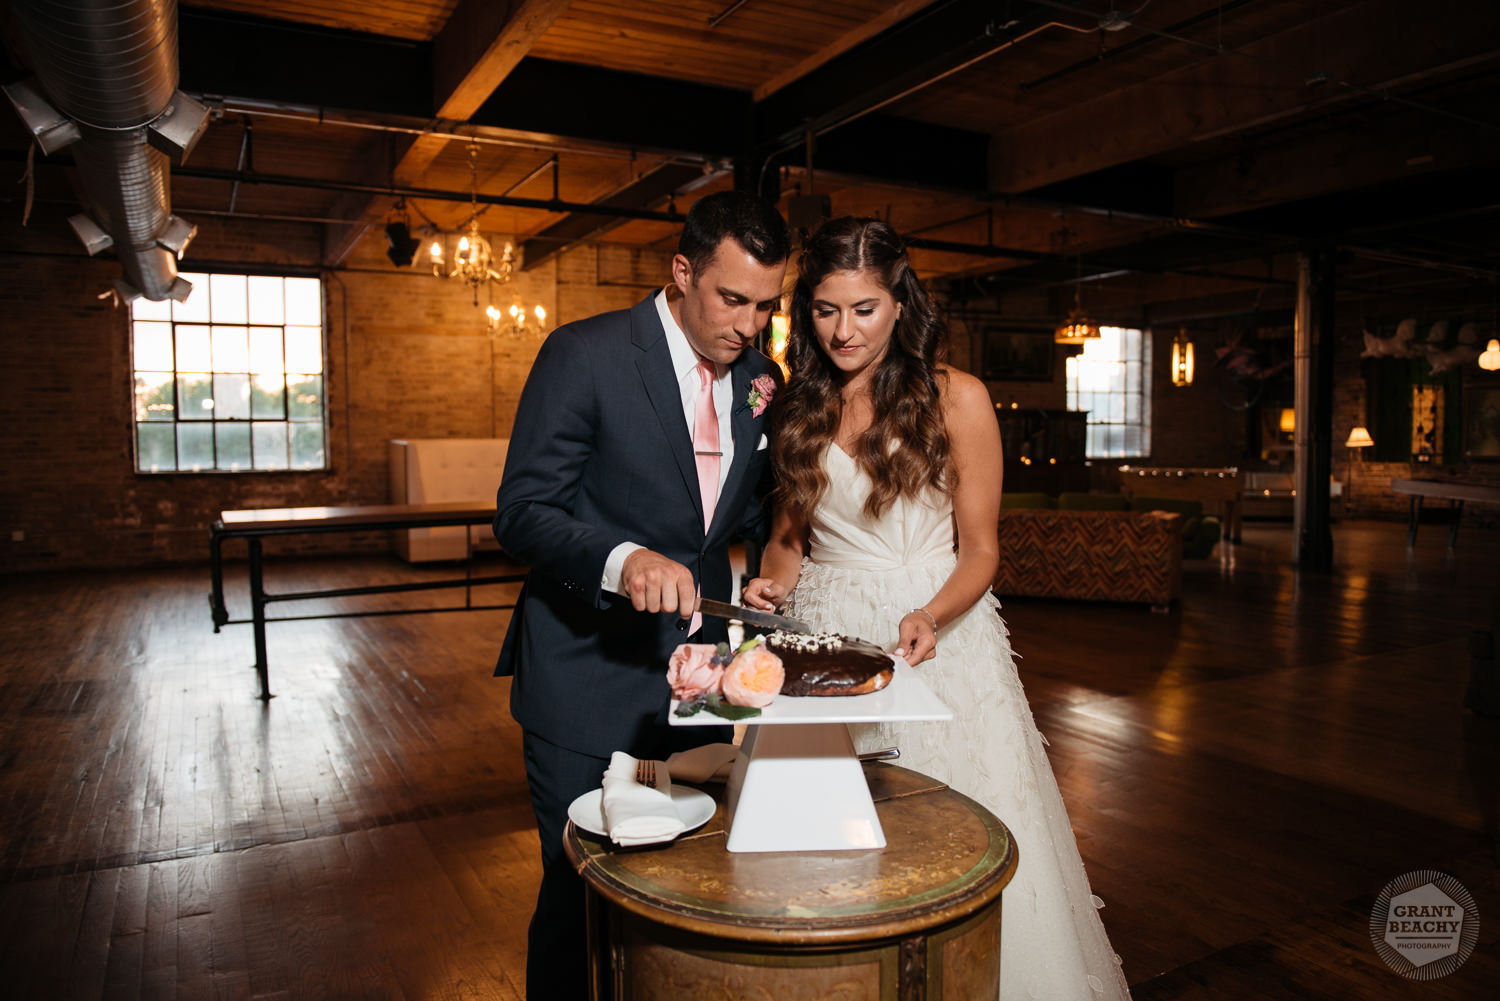 Chicago wedding photographer Grant Beachy-76.jpg